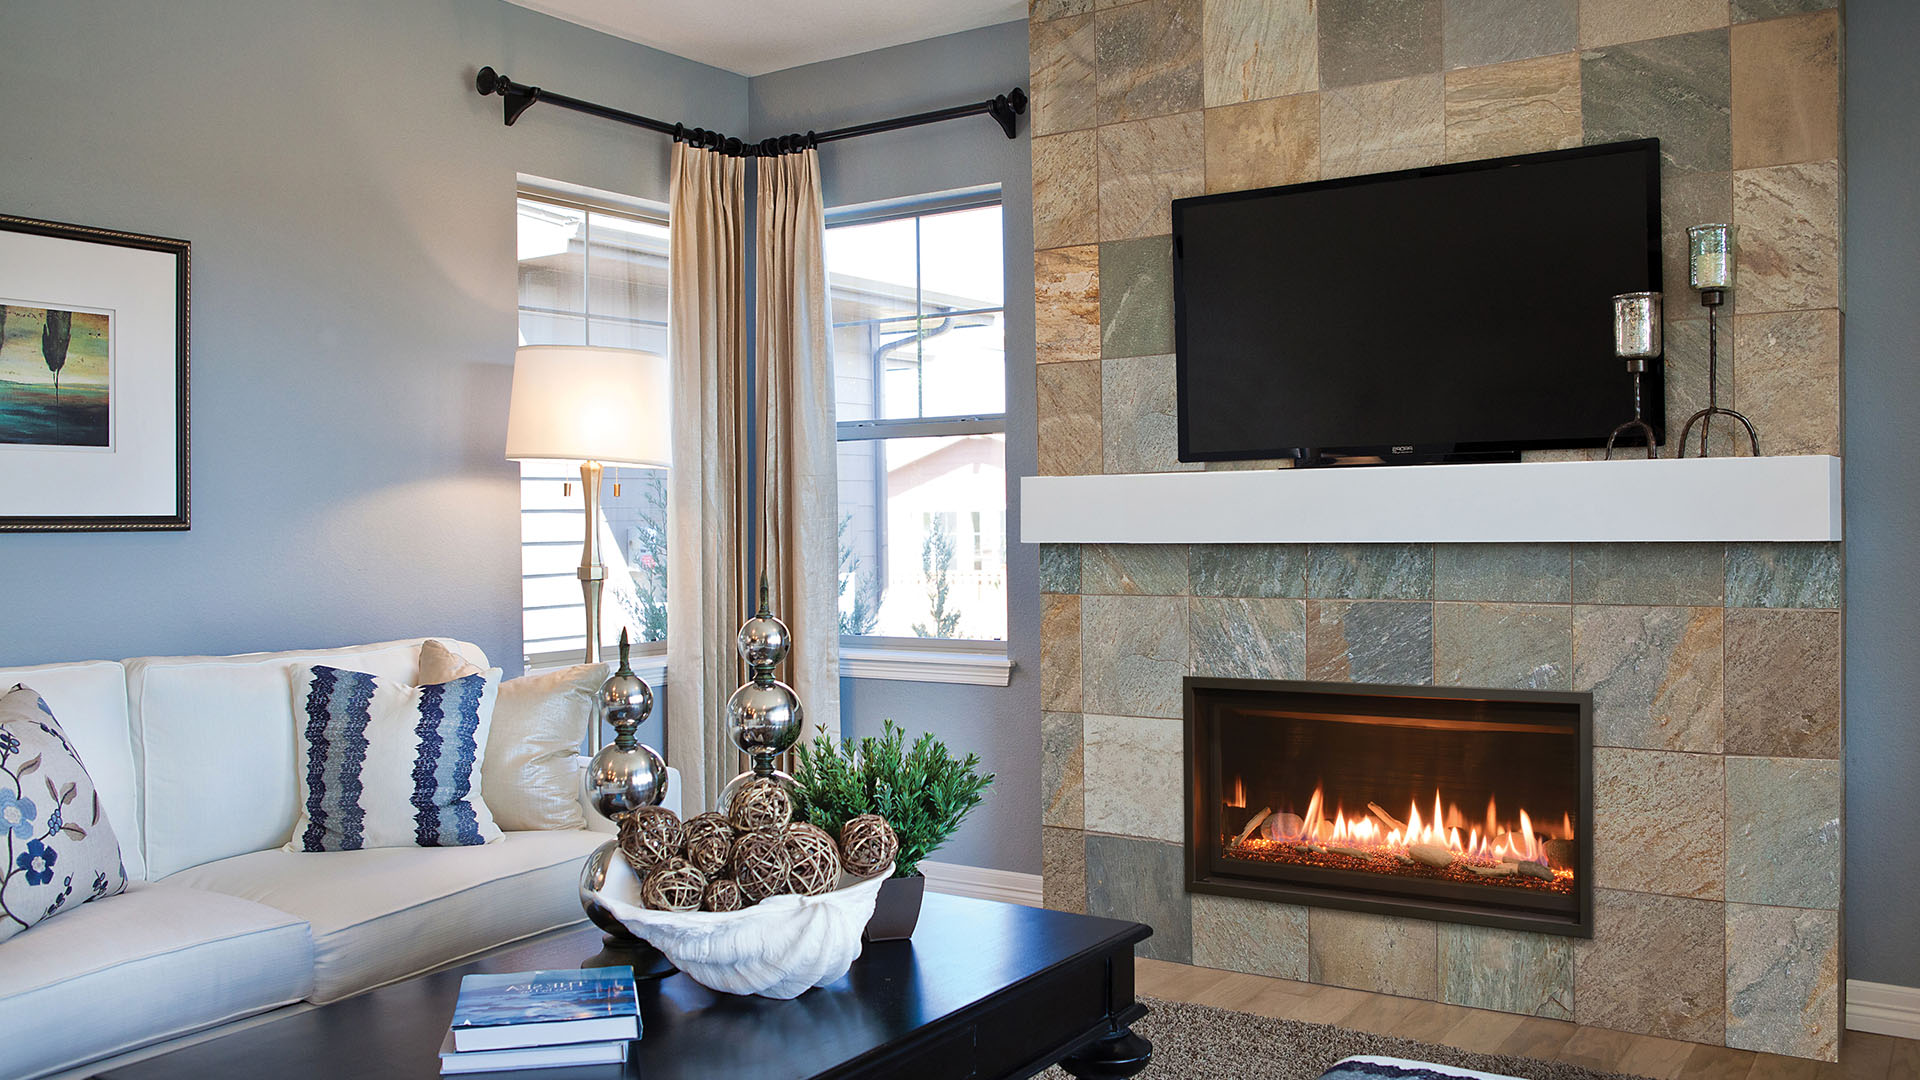 Image Of The Modern Slayton 36 Gas Fireplace Made By Kozyheat Featuring A Linear Design